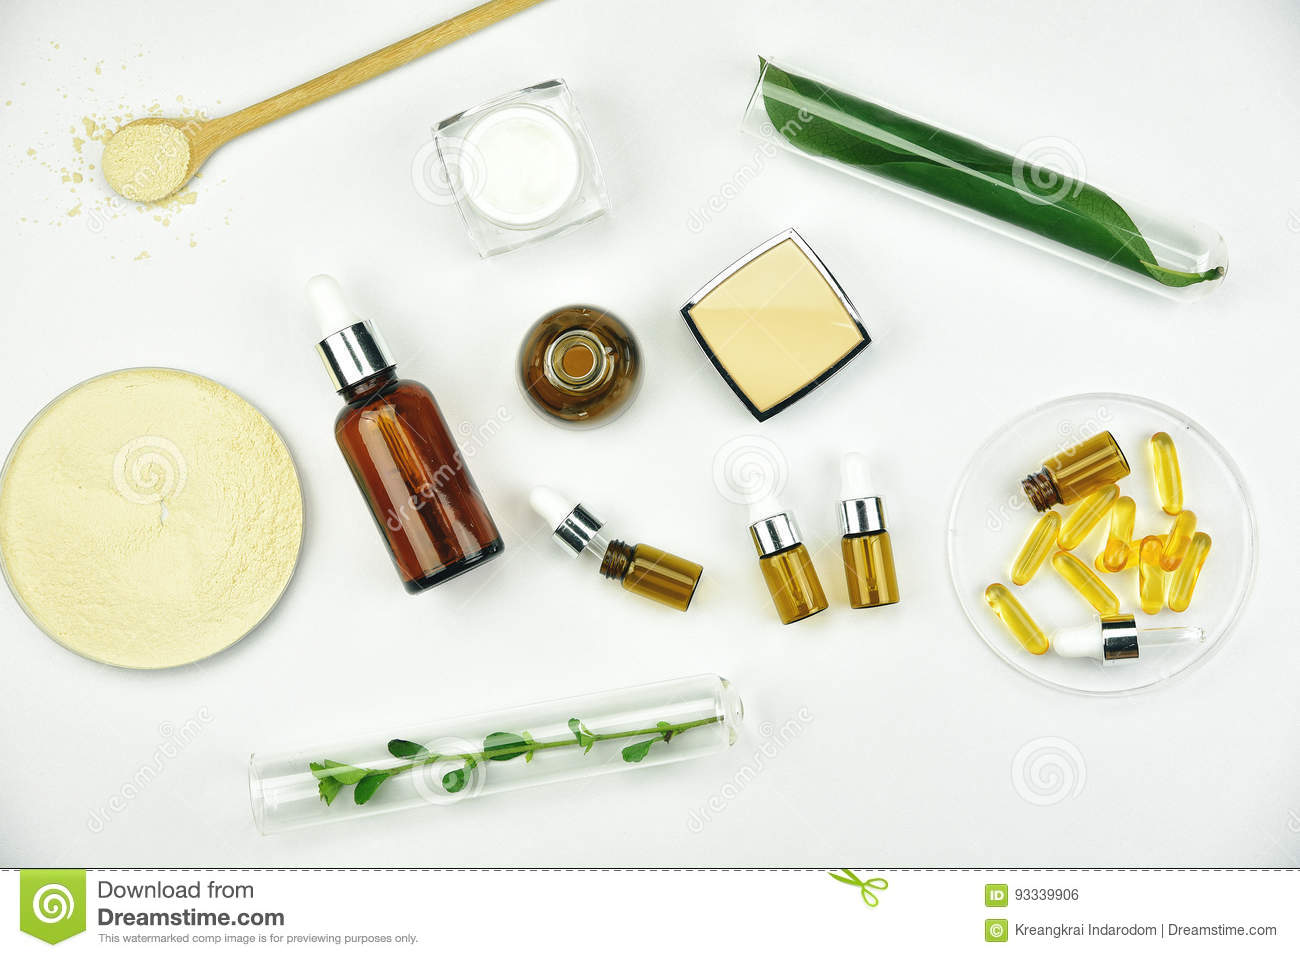 Raw material and cosmetics beauty product packaging, Natural organic ingredient